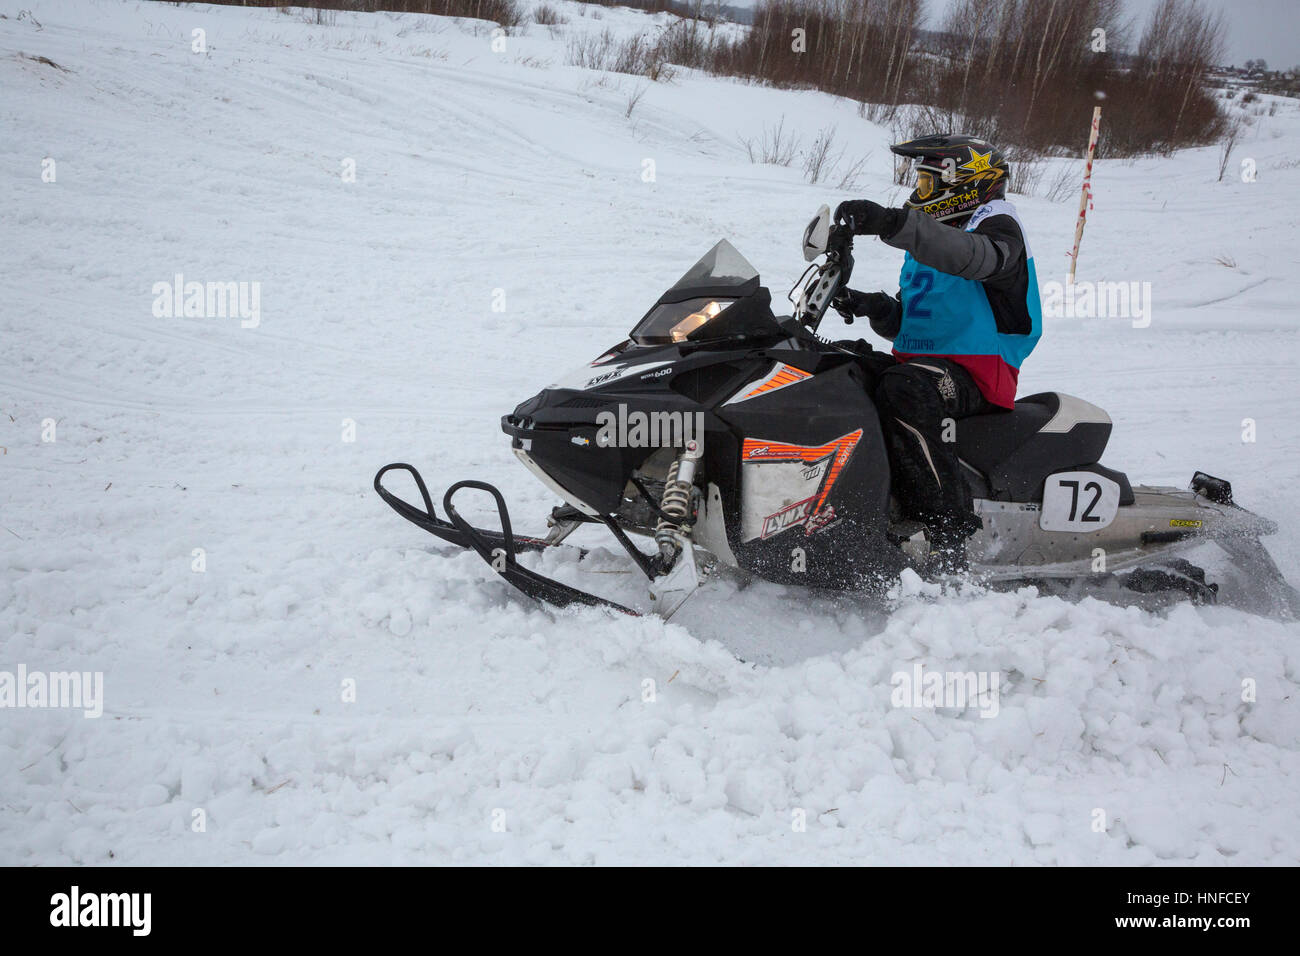 A sportsman takes part in the Volga Cup on snowmobile sport during the Winter Sports Festival in Uglich, Russia Stock Photo